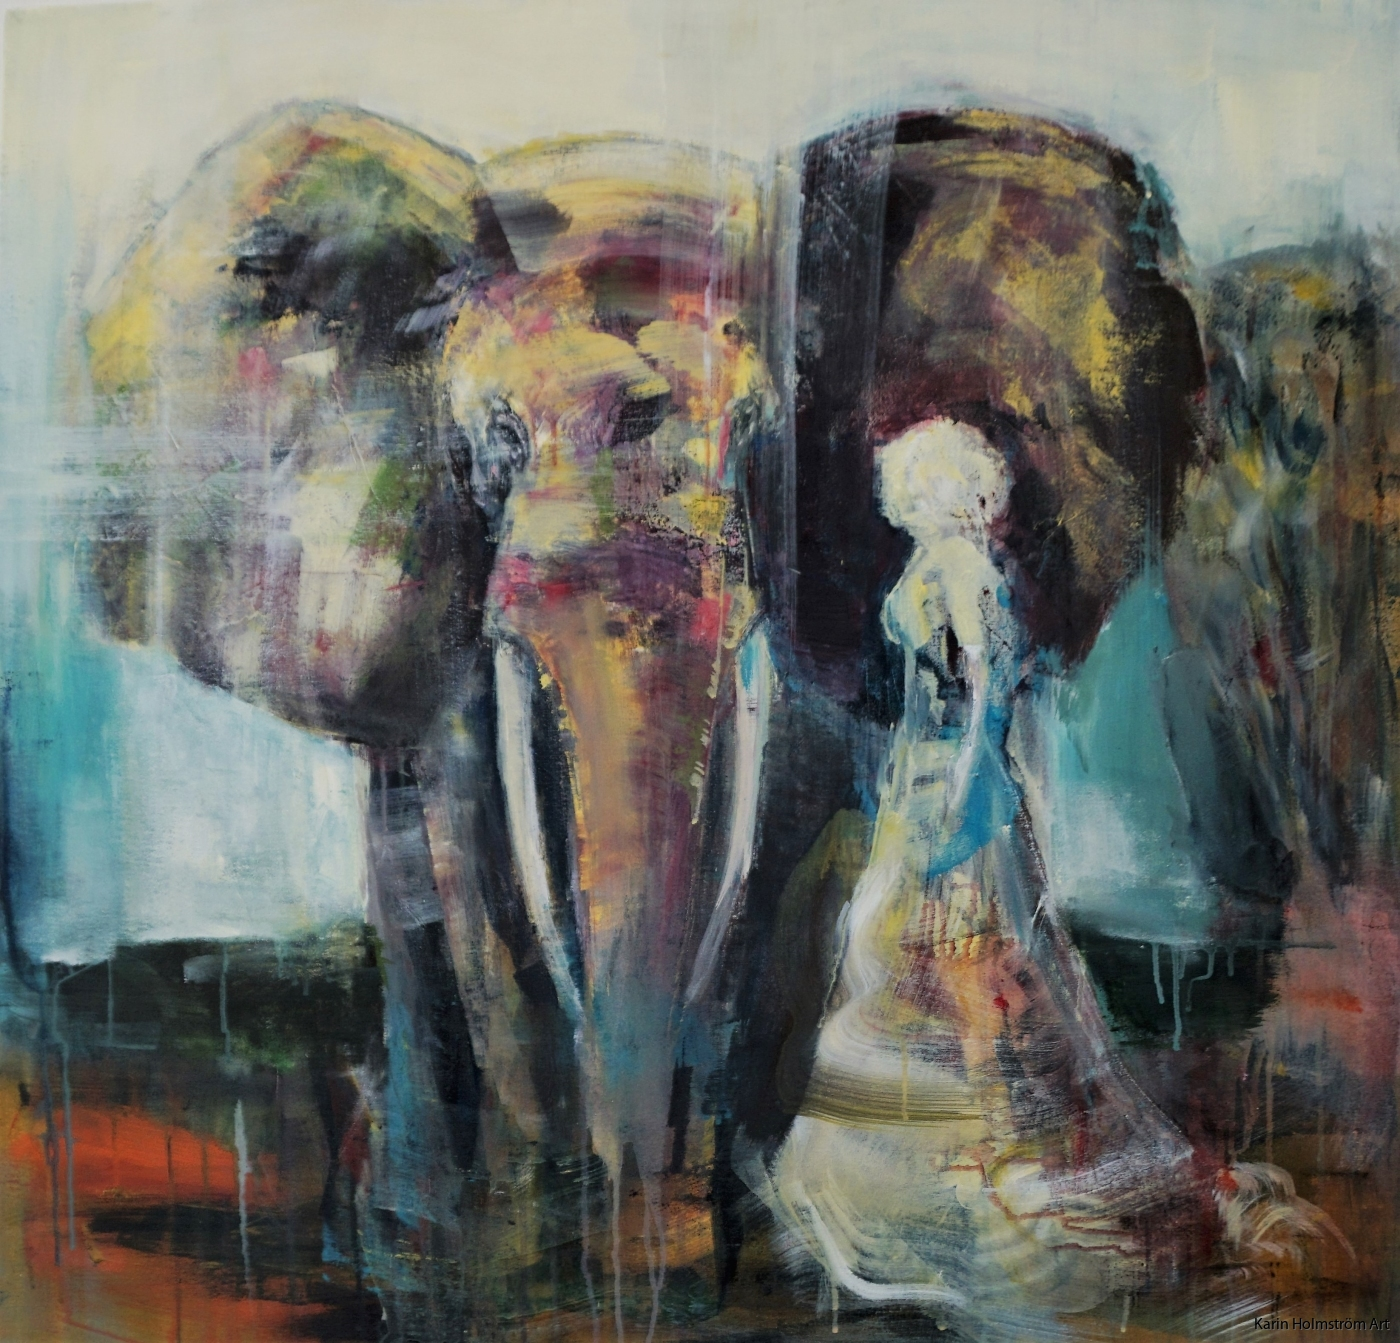 Walking with elephant bildyta ca 30x30cm